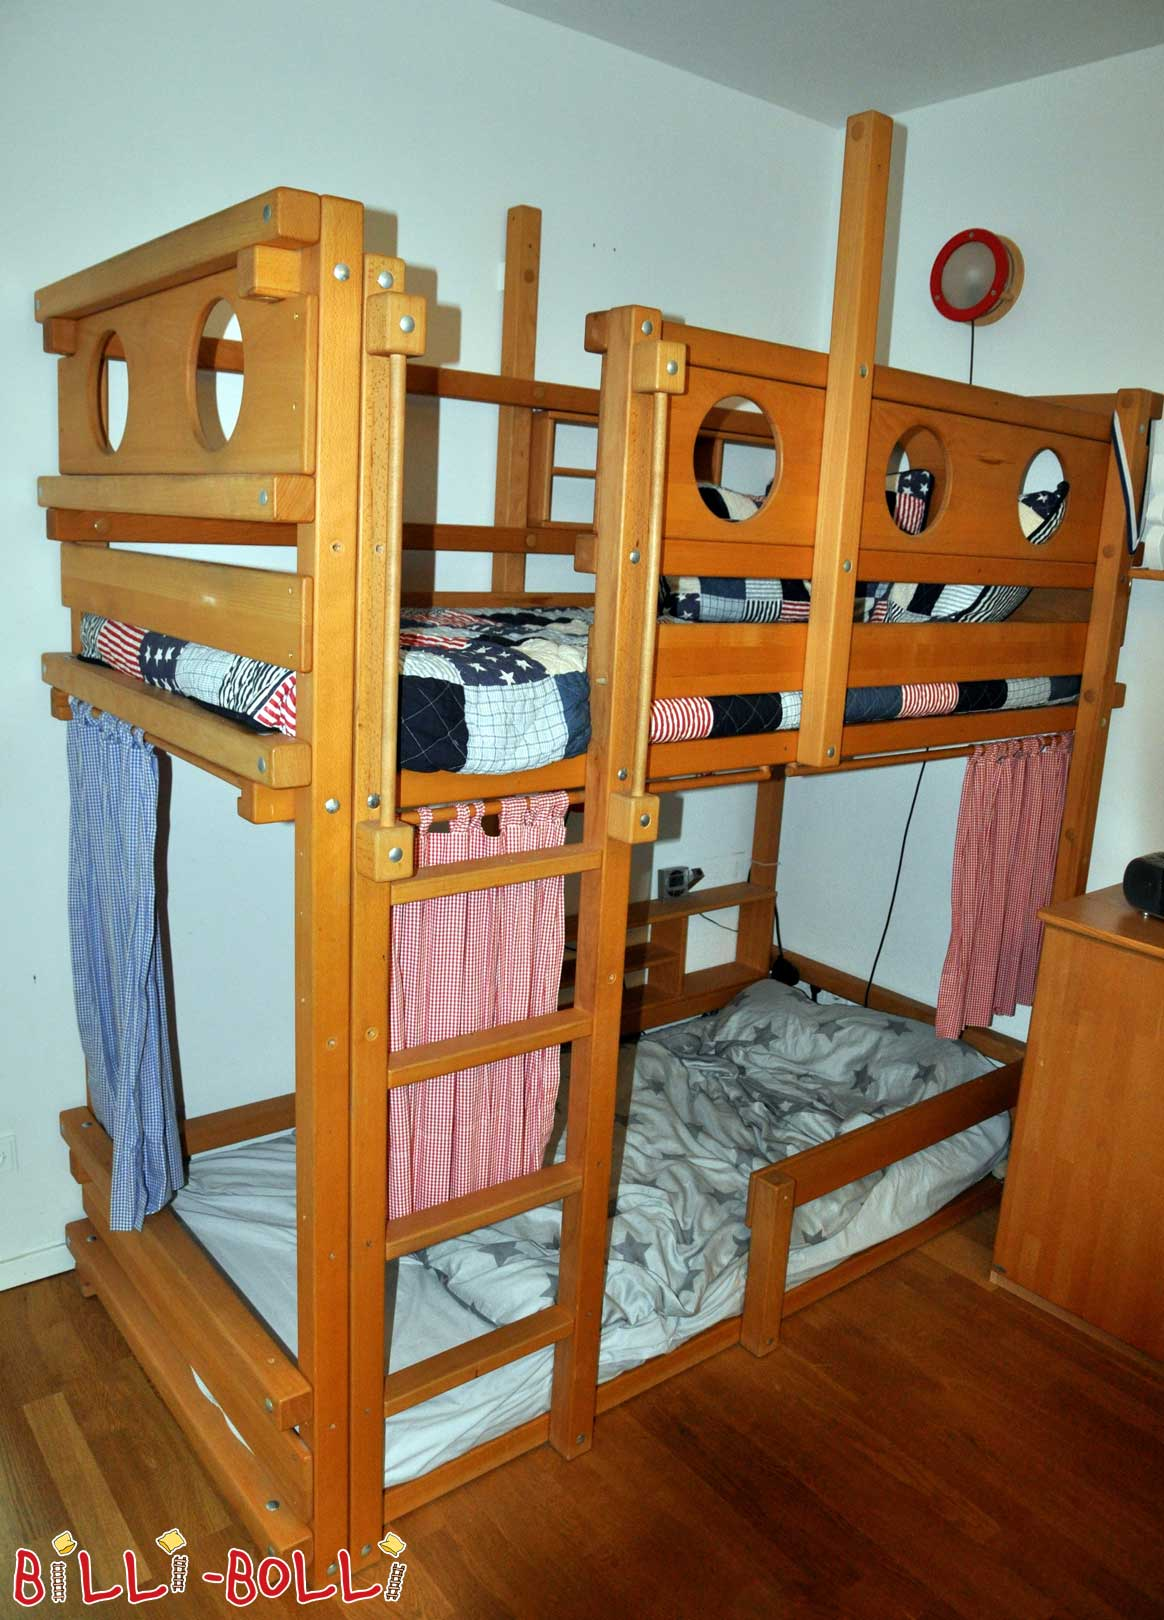 Secondhand billi bolli kids furniture for Bett second hand